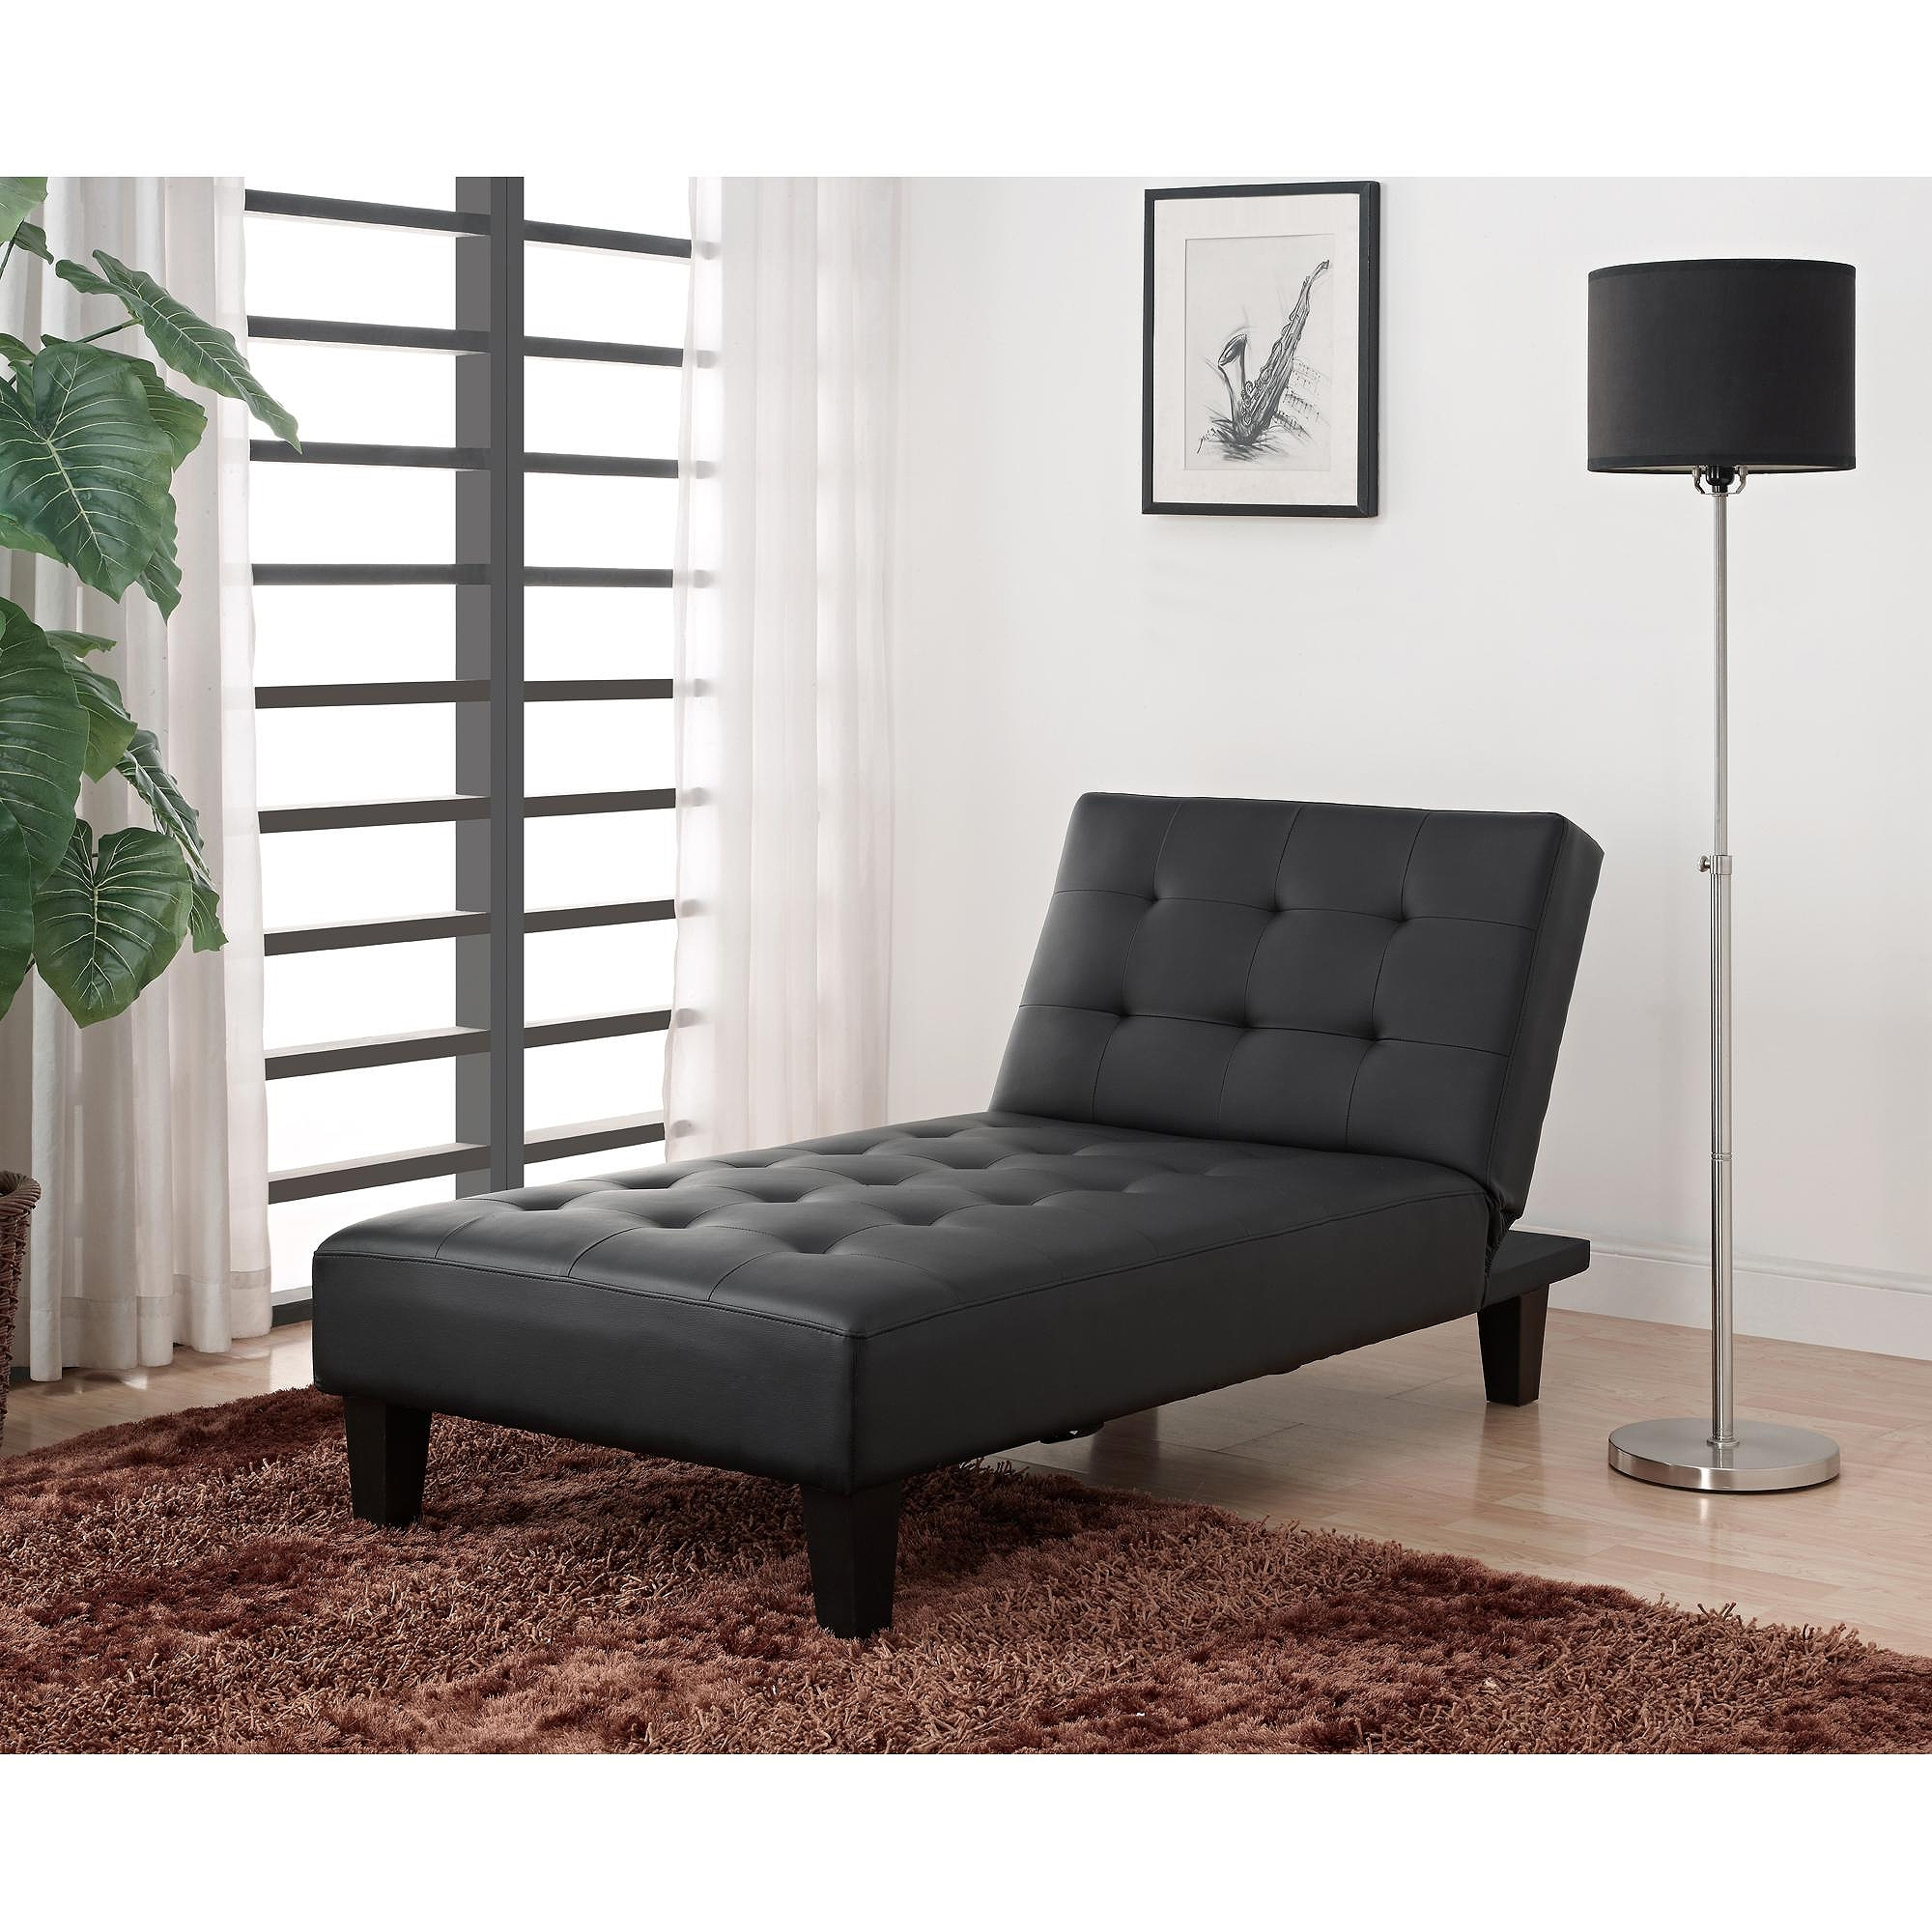 Favorite Futon Chaises Throughout Julia Futon Chaise Lounger, Black – Walmart (View 5 of 15)